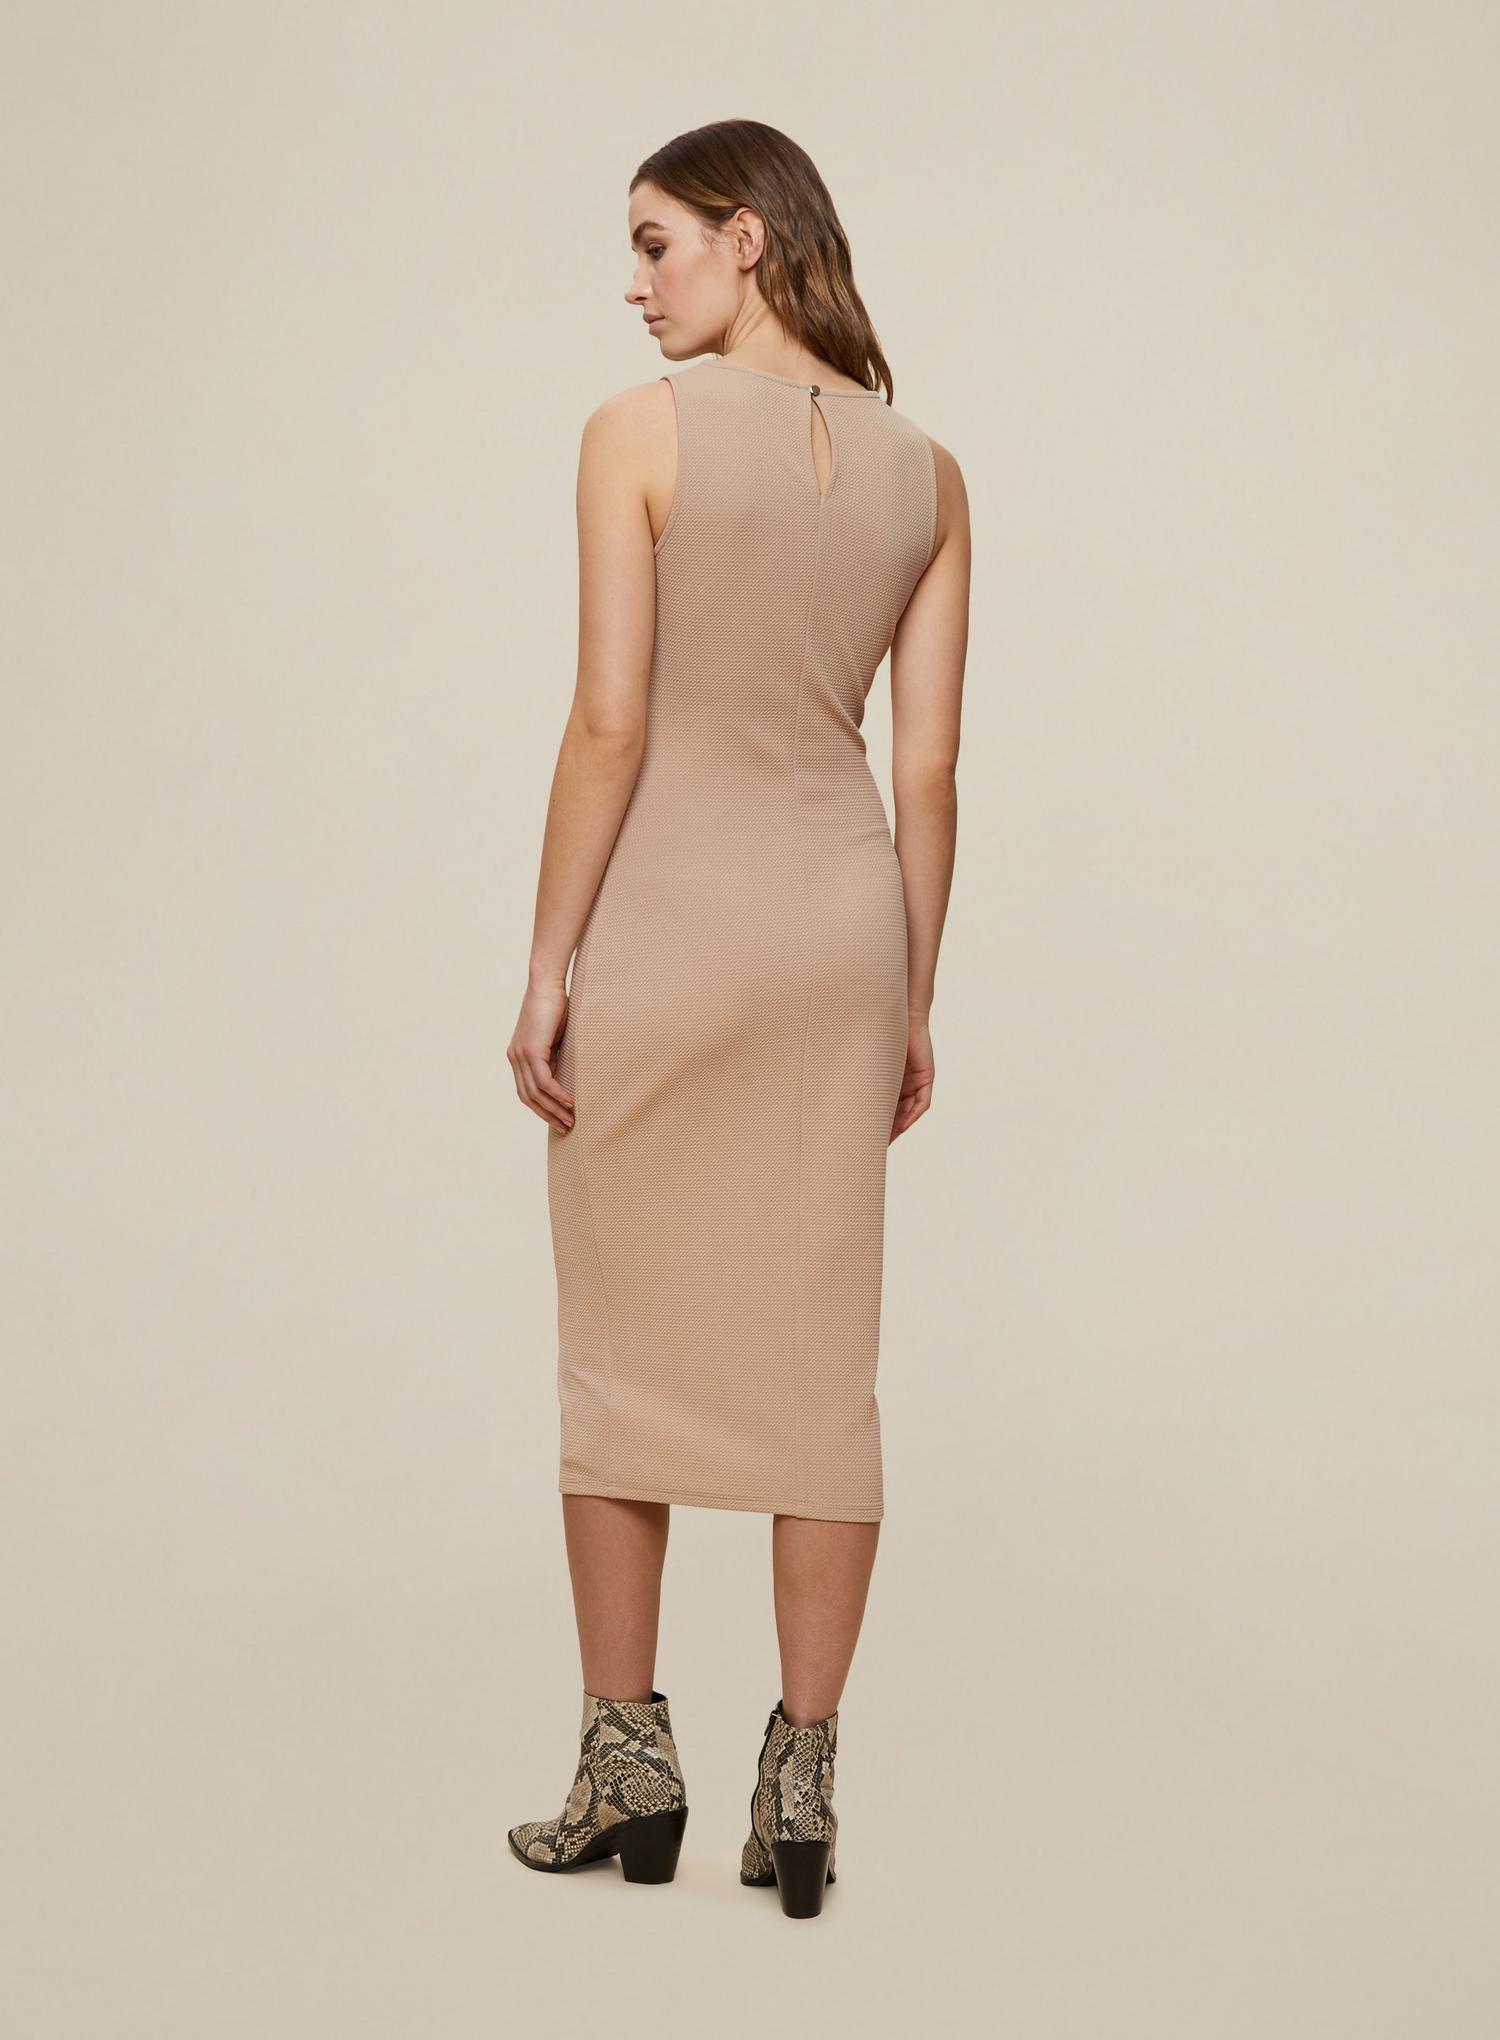 641 Camel Sleeveless Bodycon Dress image number 2